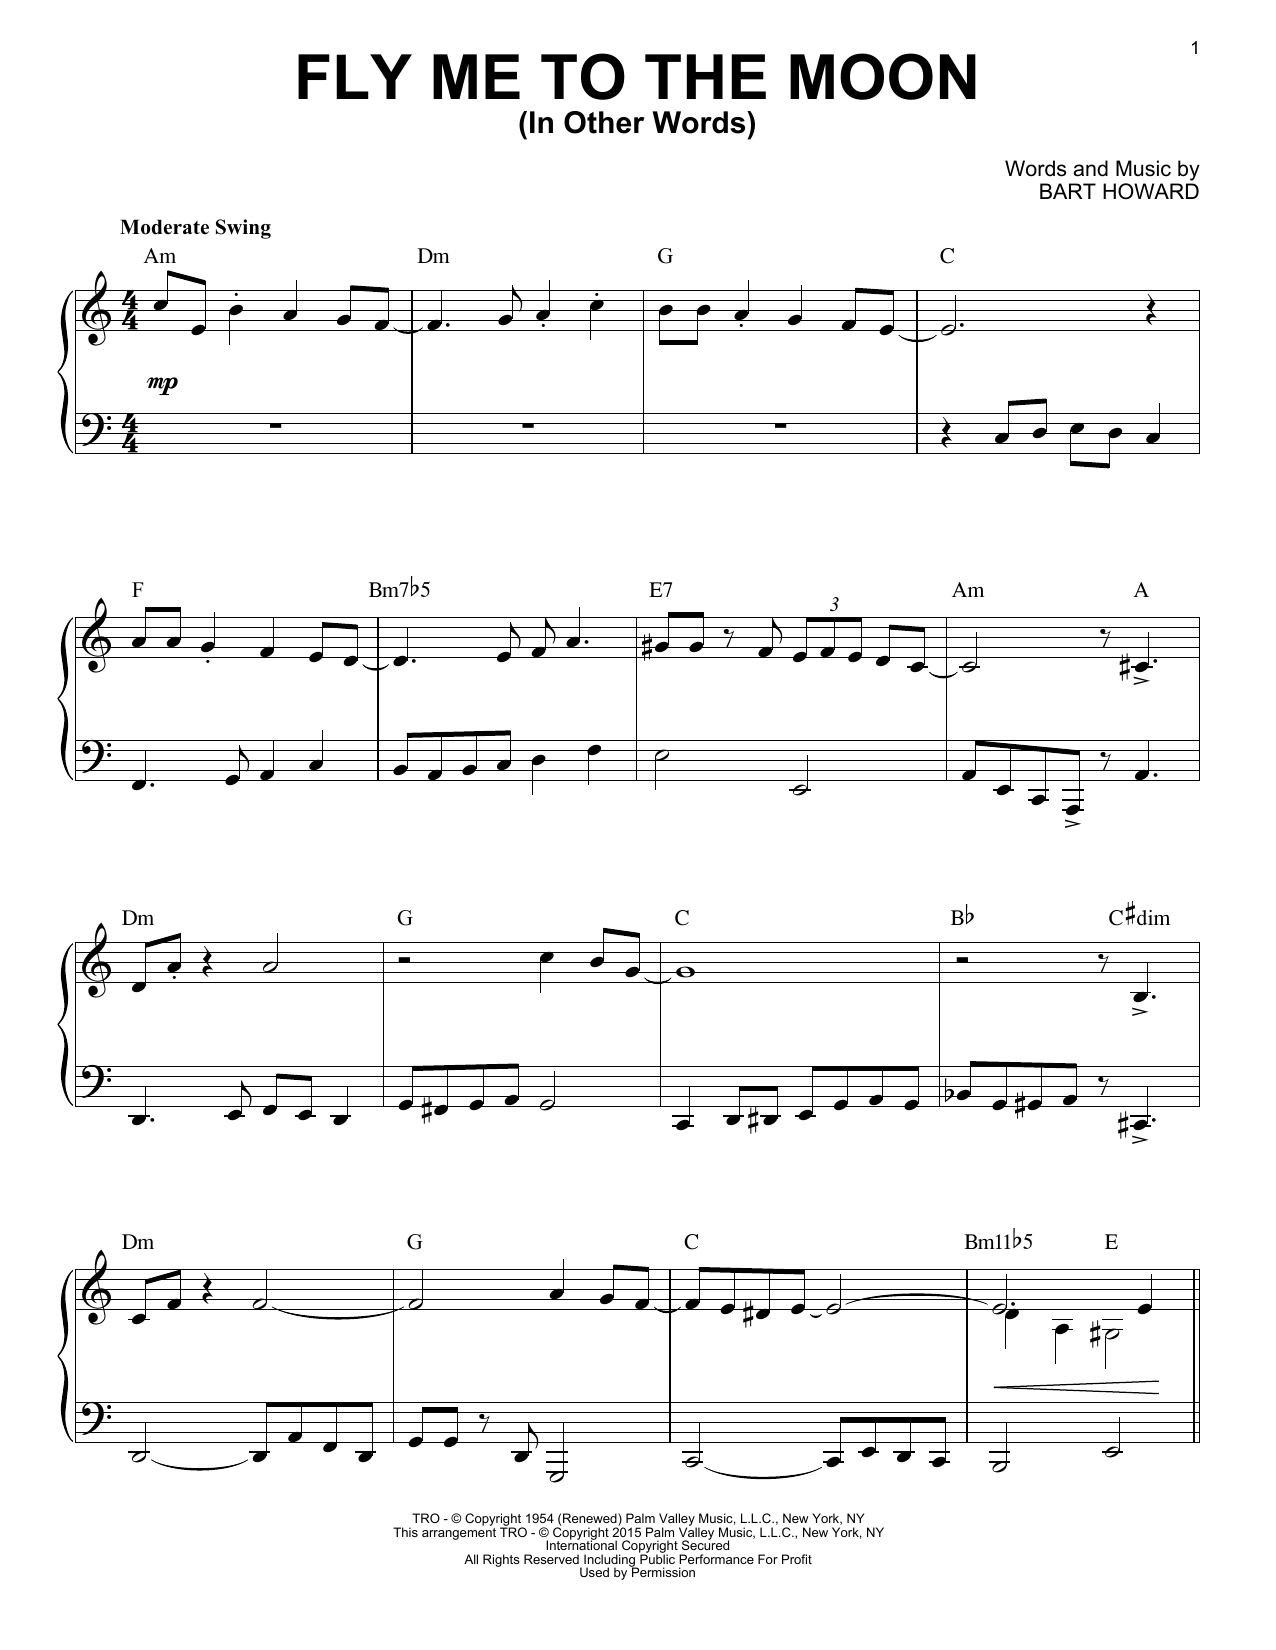 Tony Bennett Fly Me To The Moon (In Other Words) sheet music notes and chords